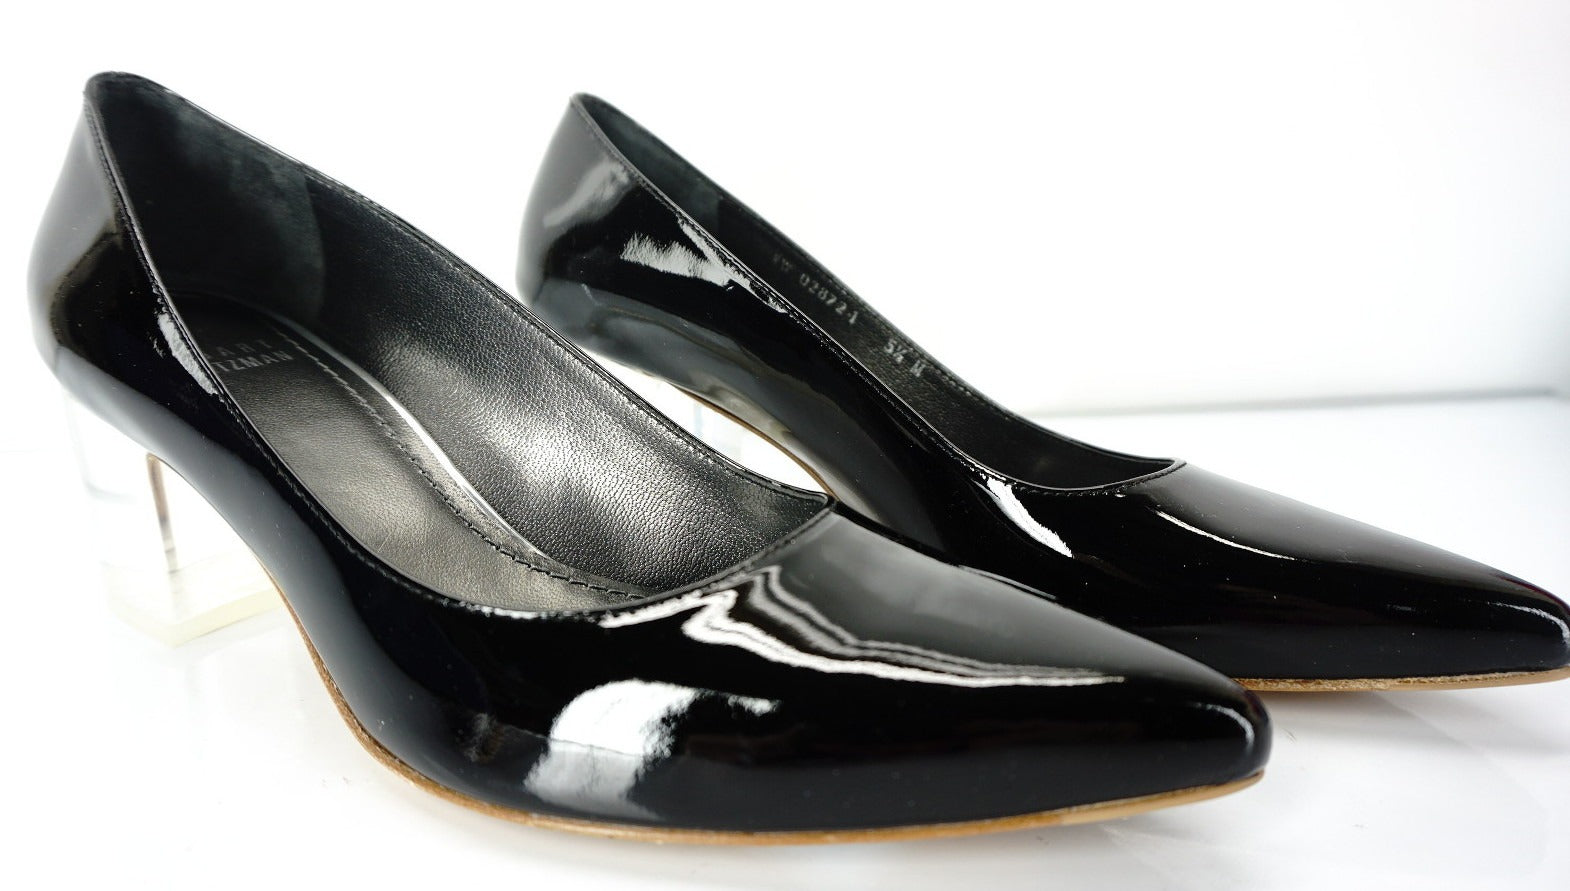 Stuart Weitzman Black Patent Leather First Class Pointy Pumps Size 5.5 Heel NIB